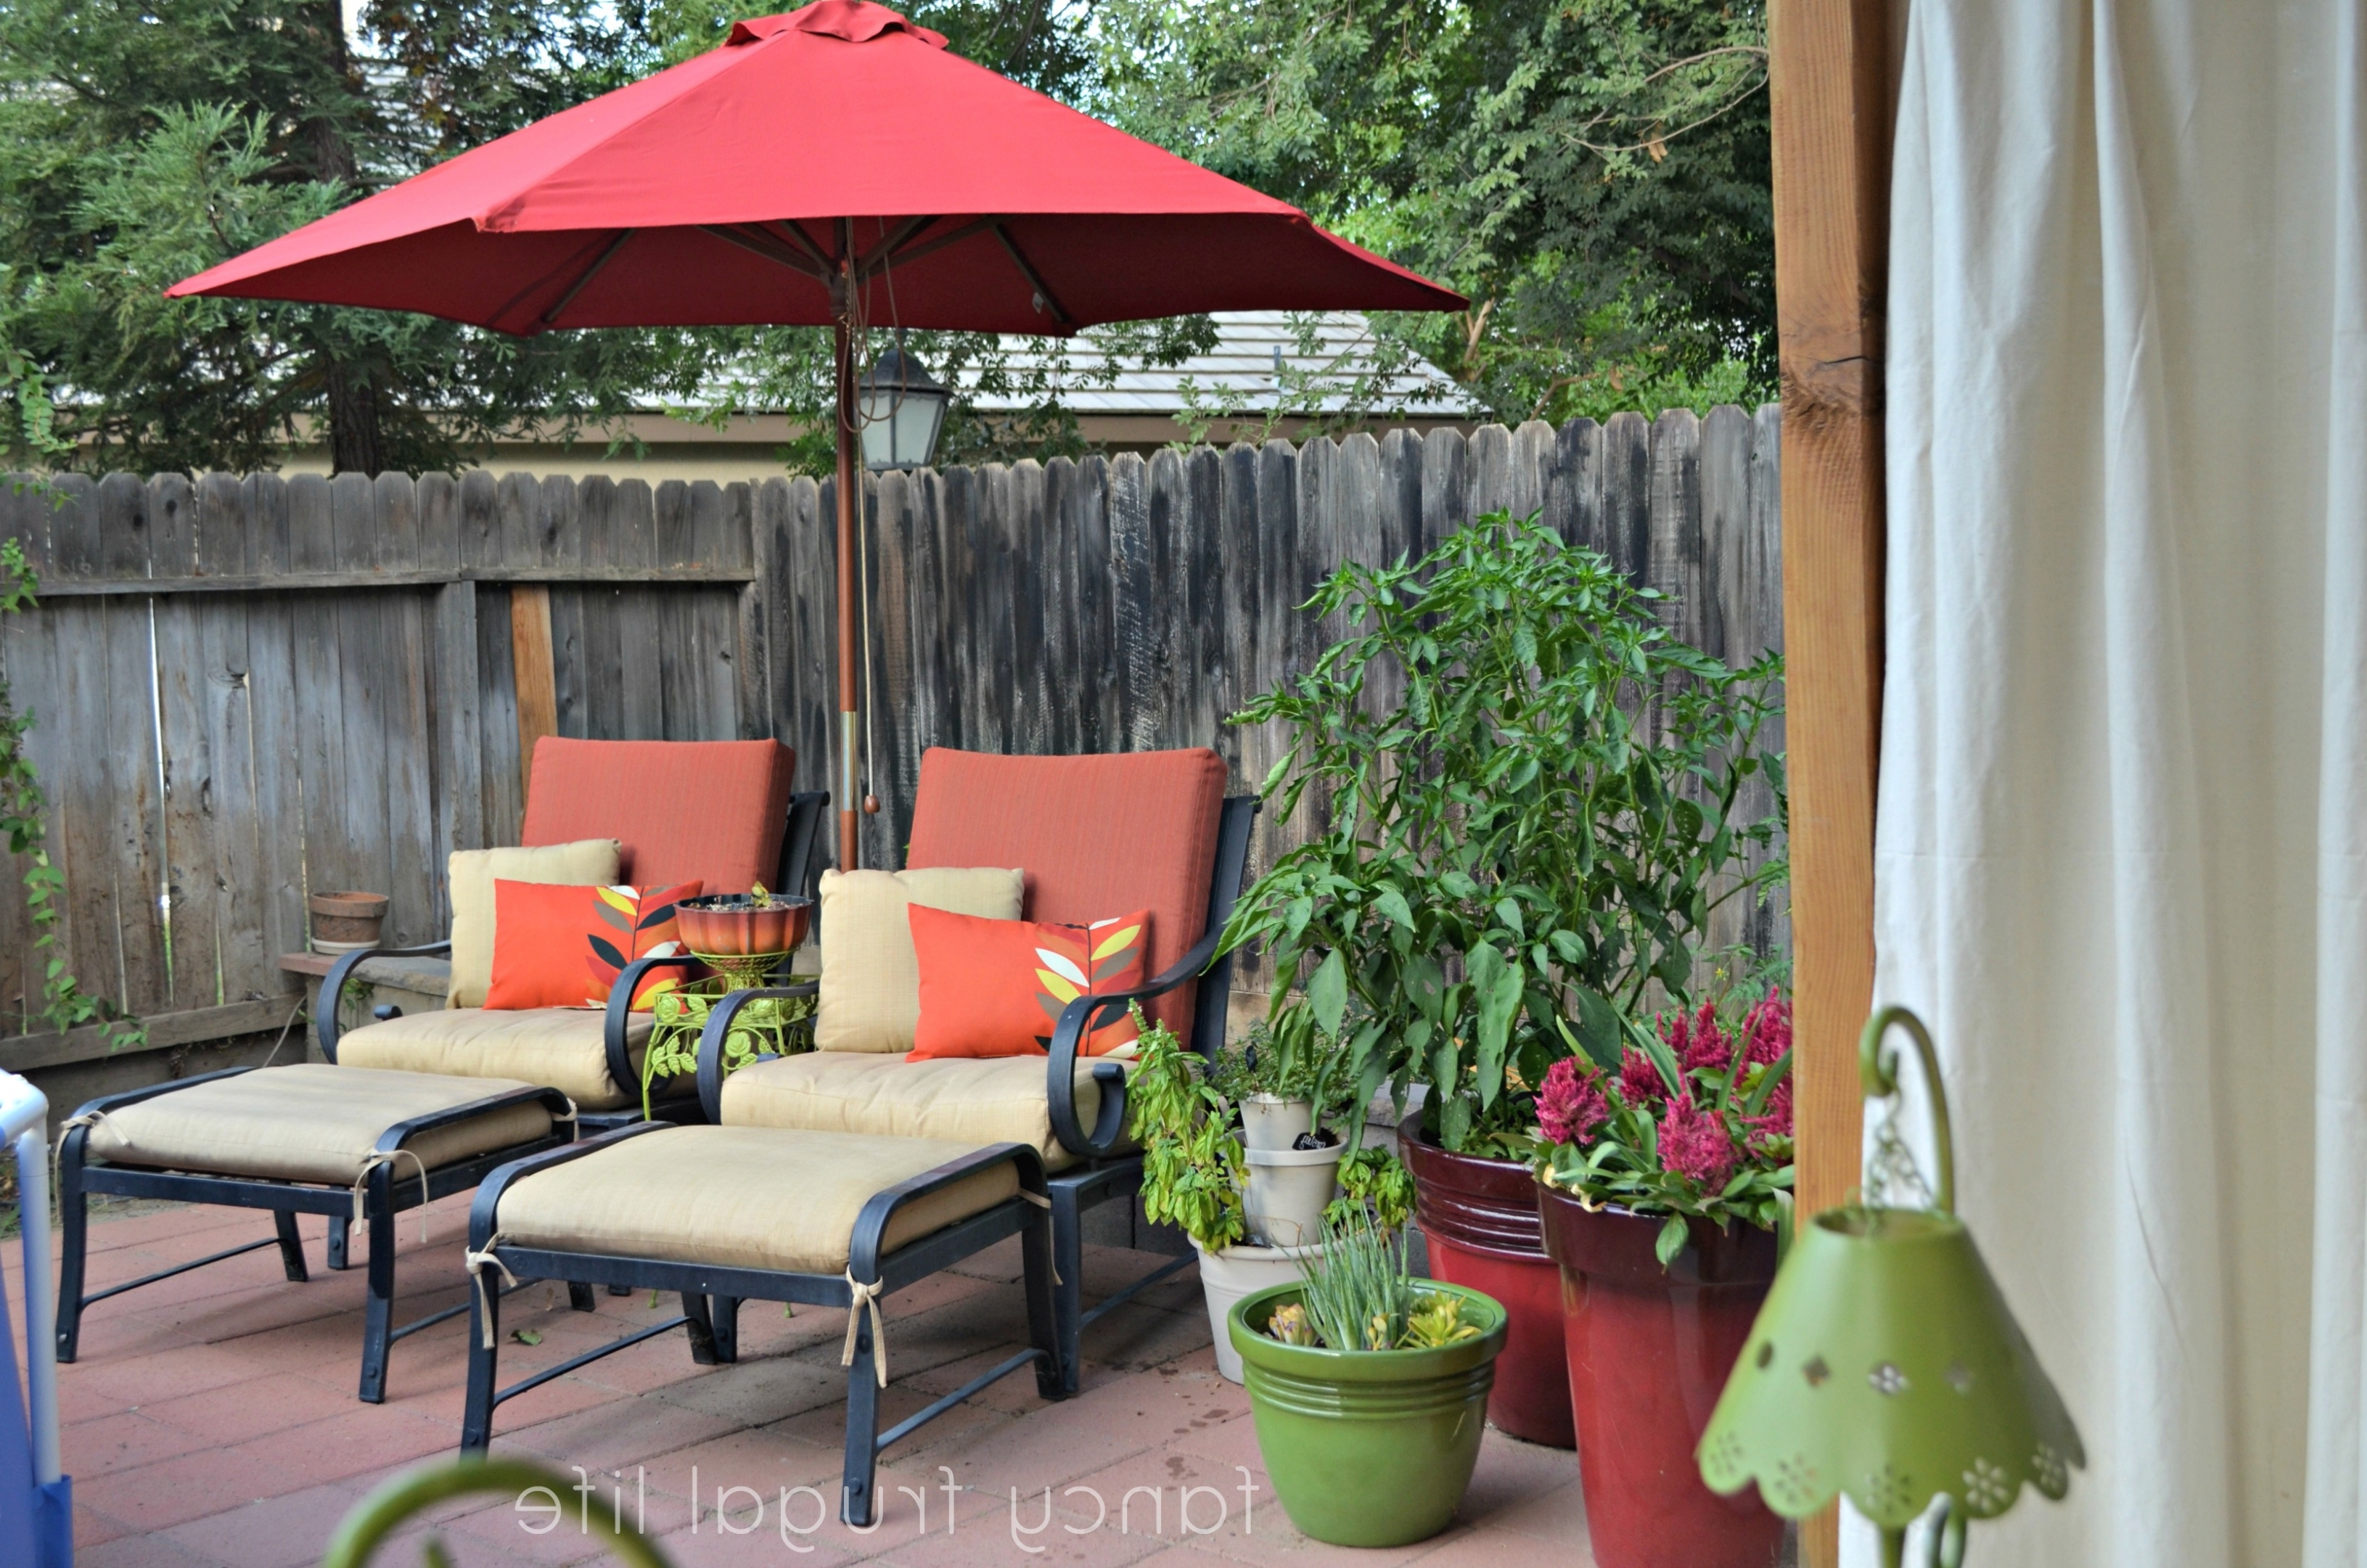 Sears Patio Umbrellas With Well Known Interior Decor: Patio: Majestic Patio Furniture Sears For Appealing (View 15 of 20)